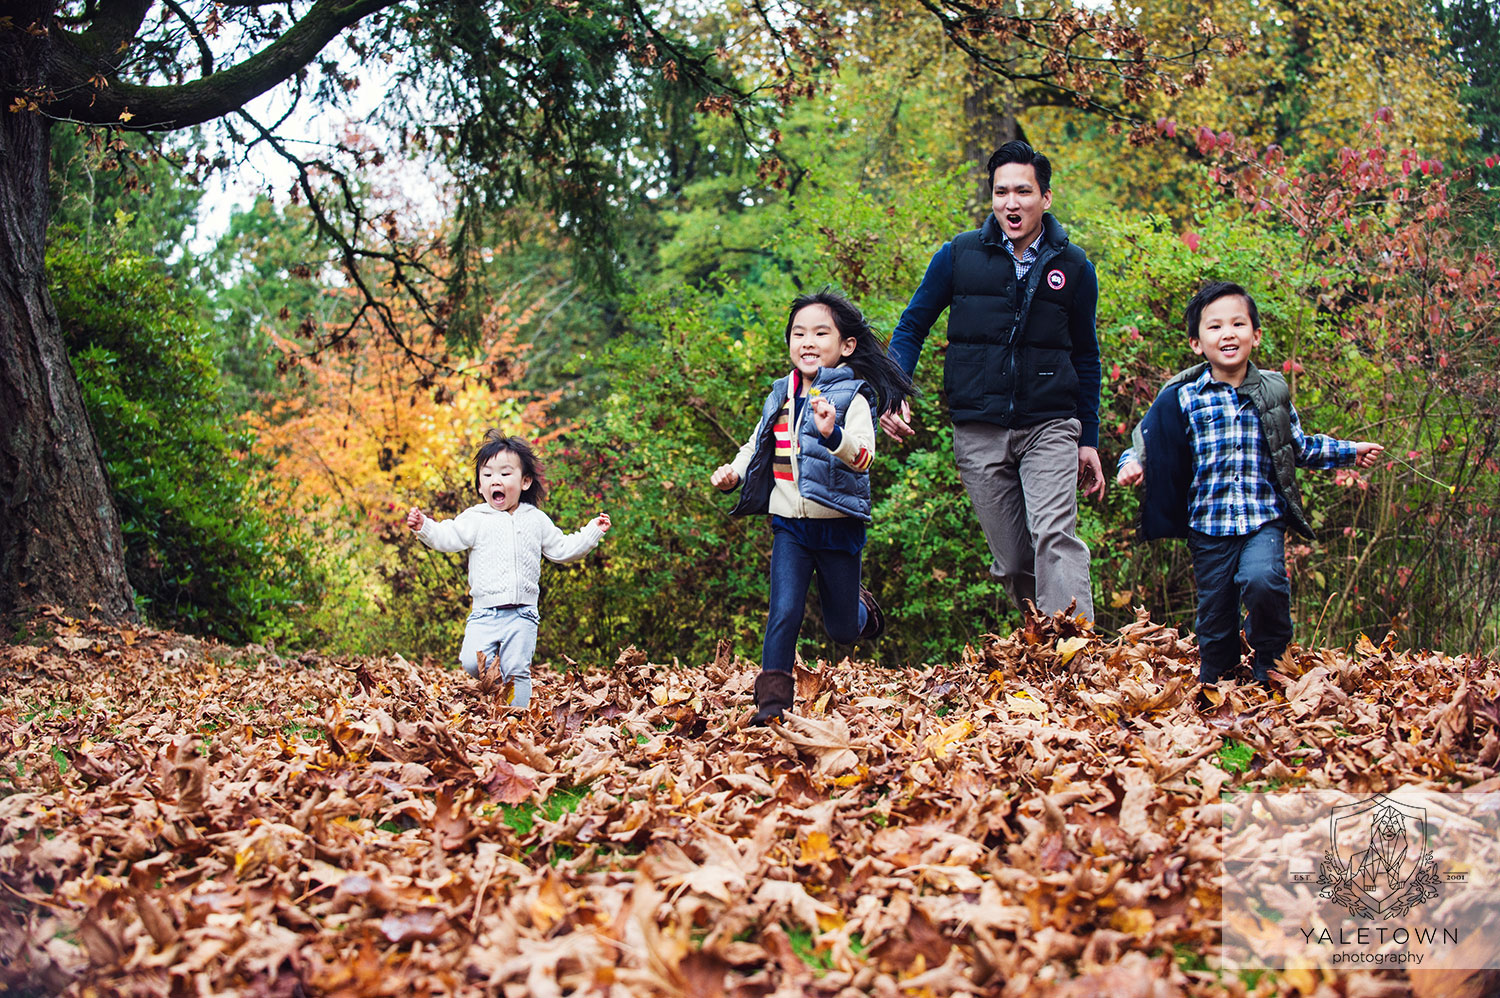 Fall-portrait-vancouver-family-photography-yaletown-photography-photo